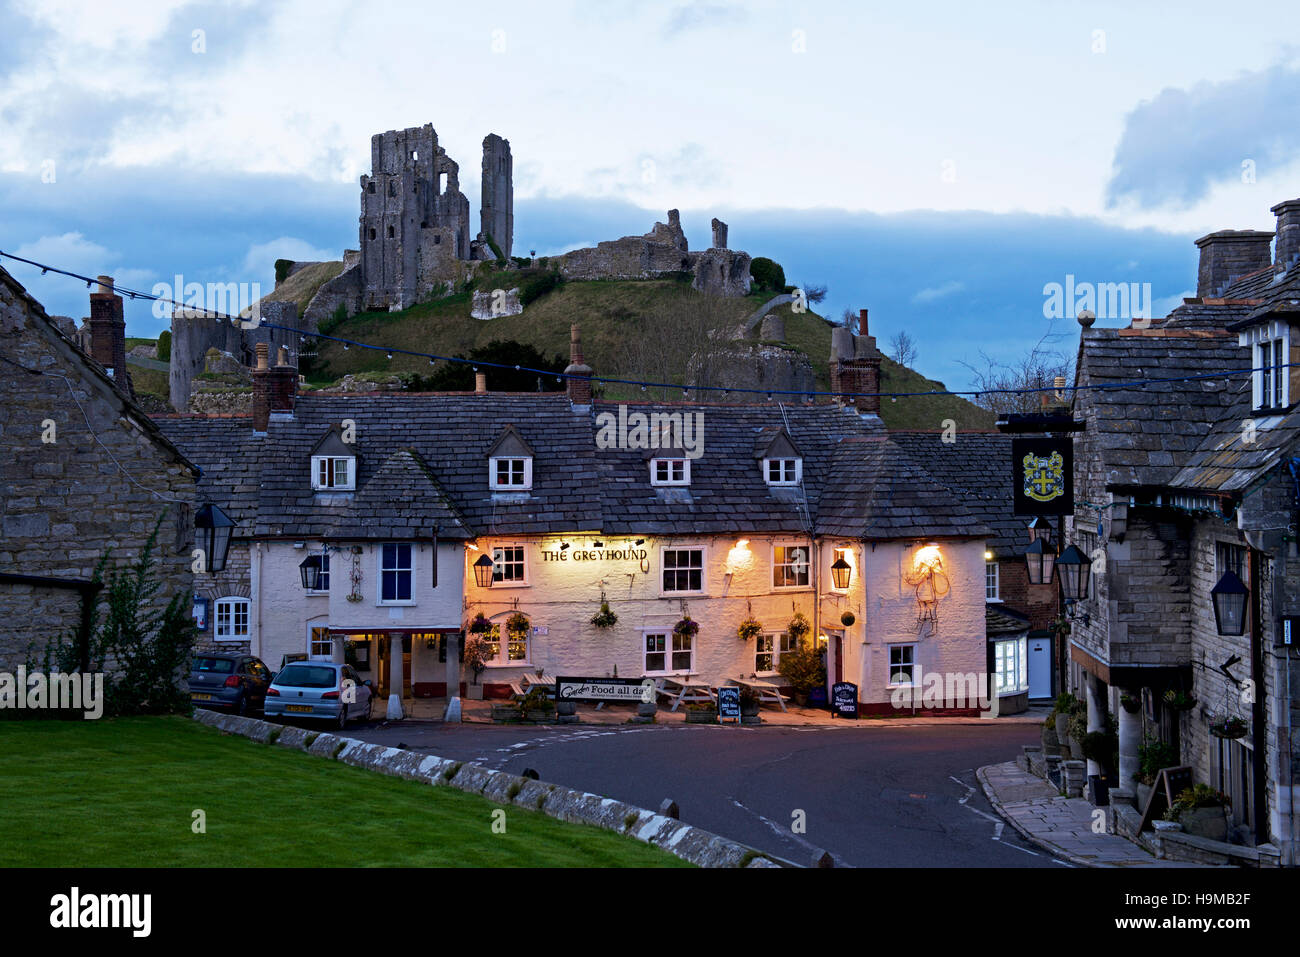 Corfe Castle and the Greyhound Inn, Isle of Purbeck, Dorset, England UK - Stock Image